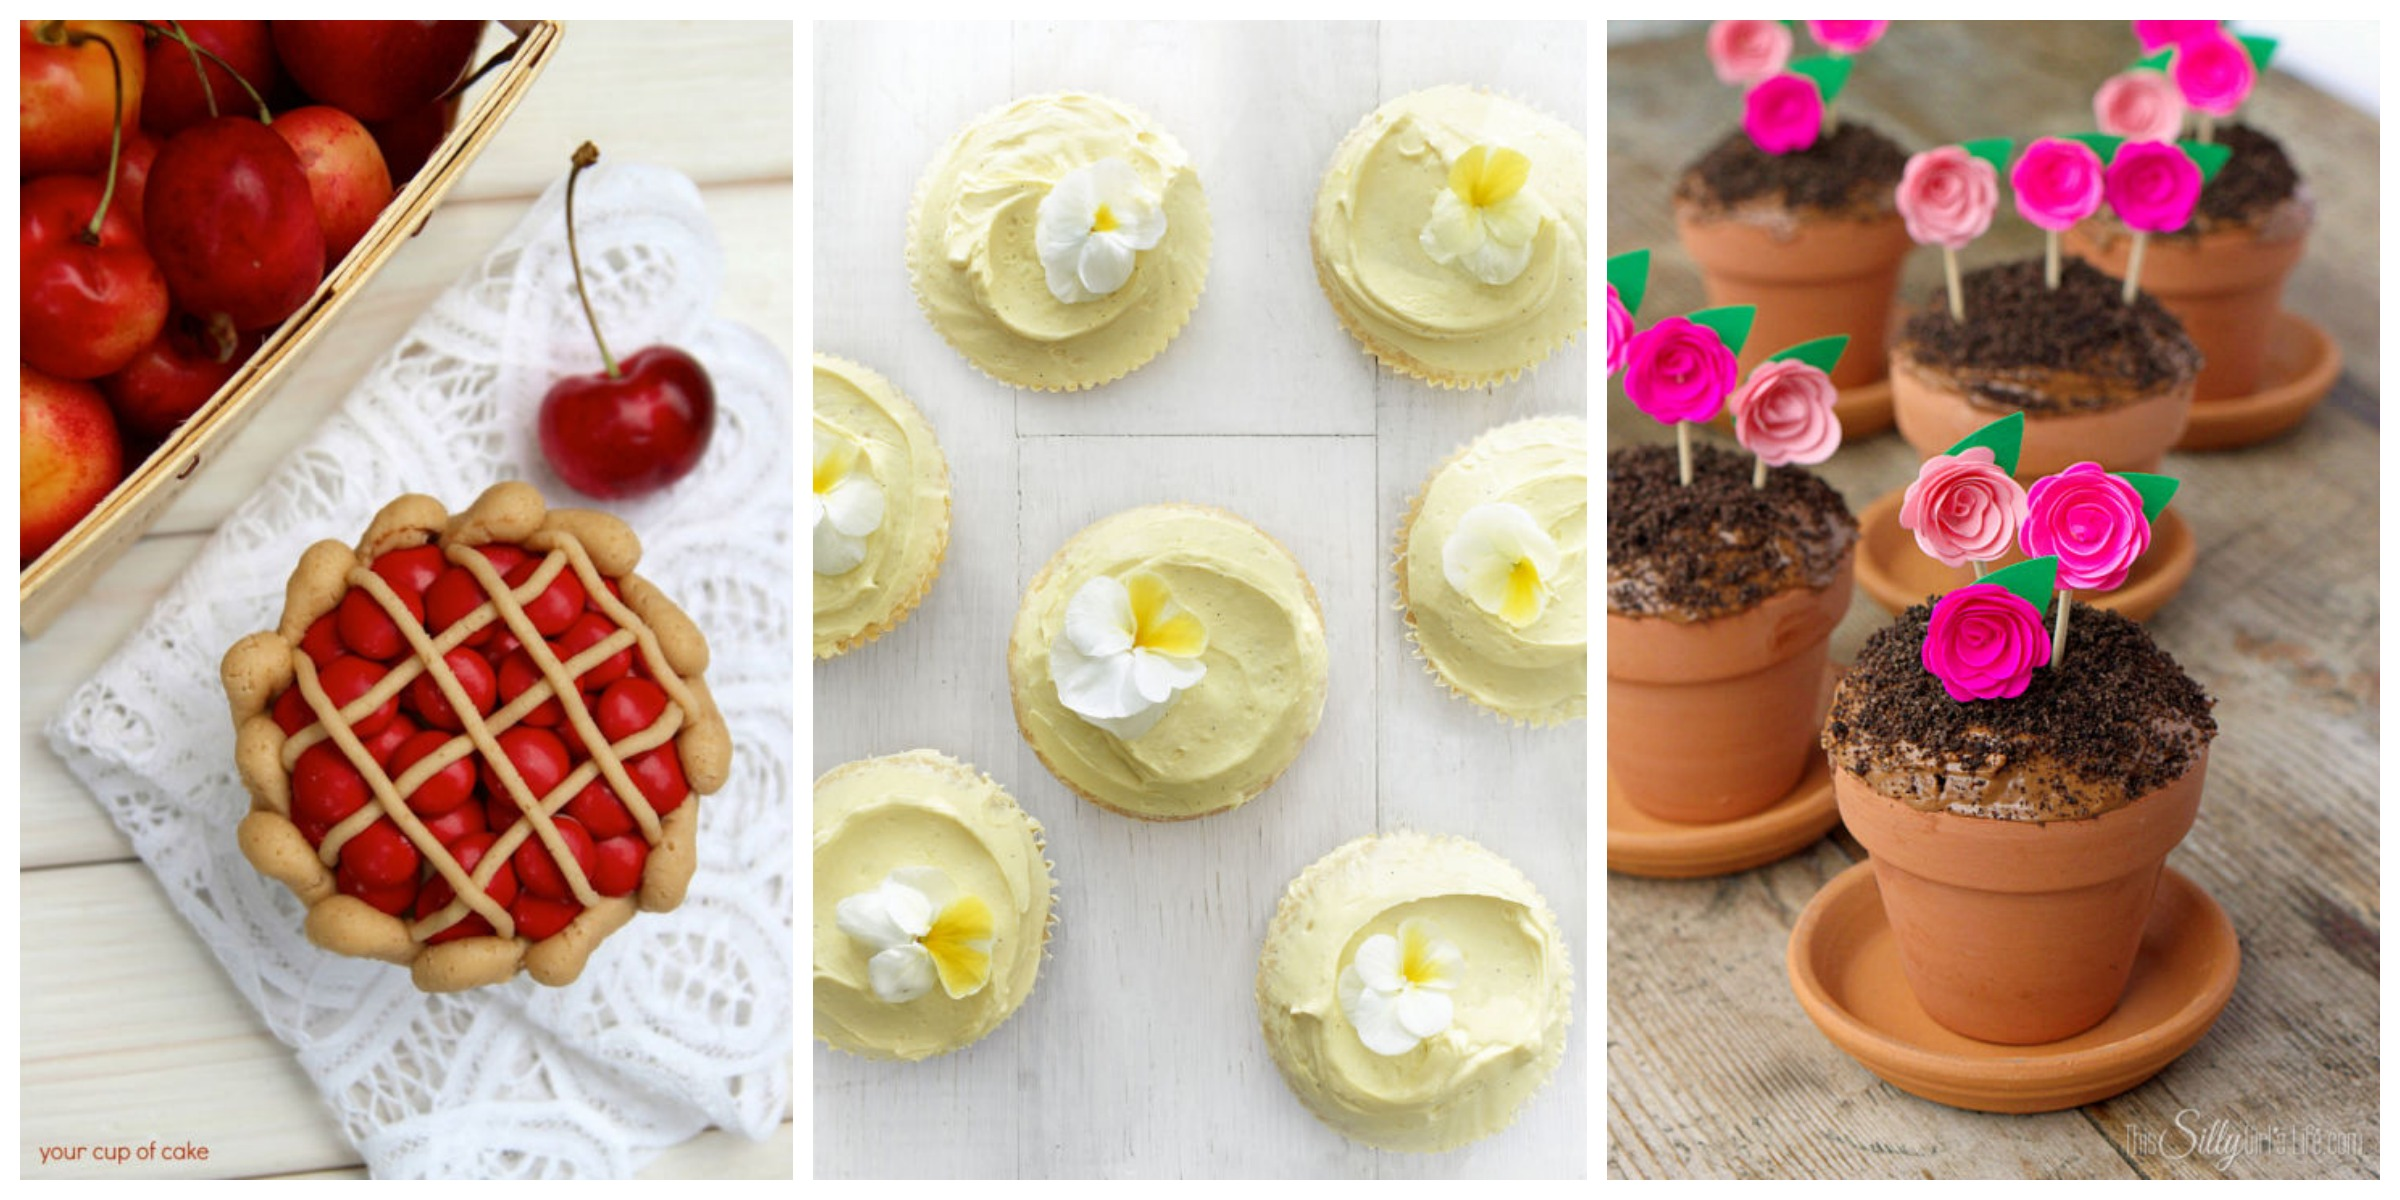 30 Best Cupcake Decorating Ideas